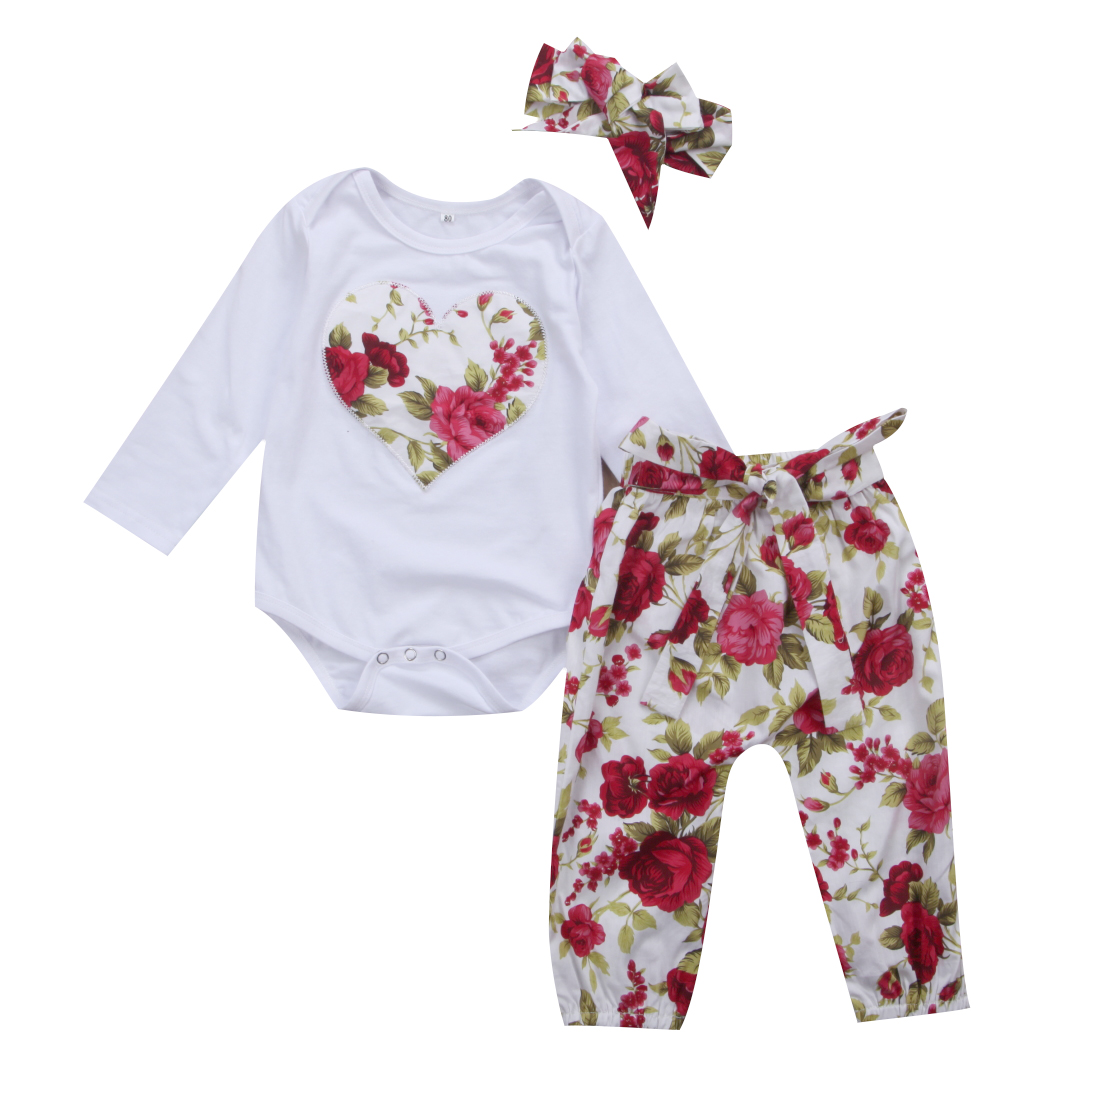 Pudcoco 3PCS Newborn Baby Girl Floral Clothes Heart Jumpsuit Bodysuit Long Floral Pants Headband Outfit 0-24M